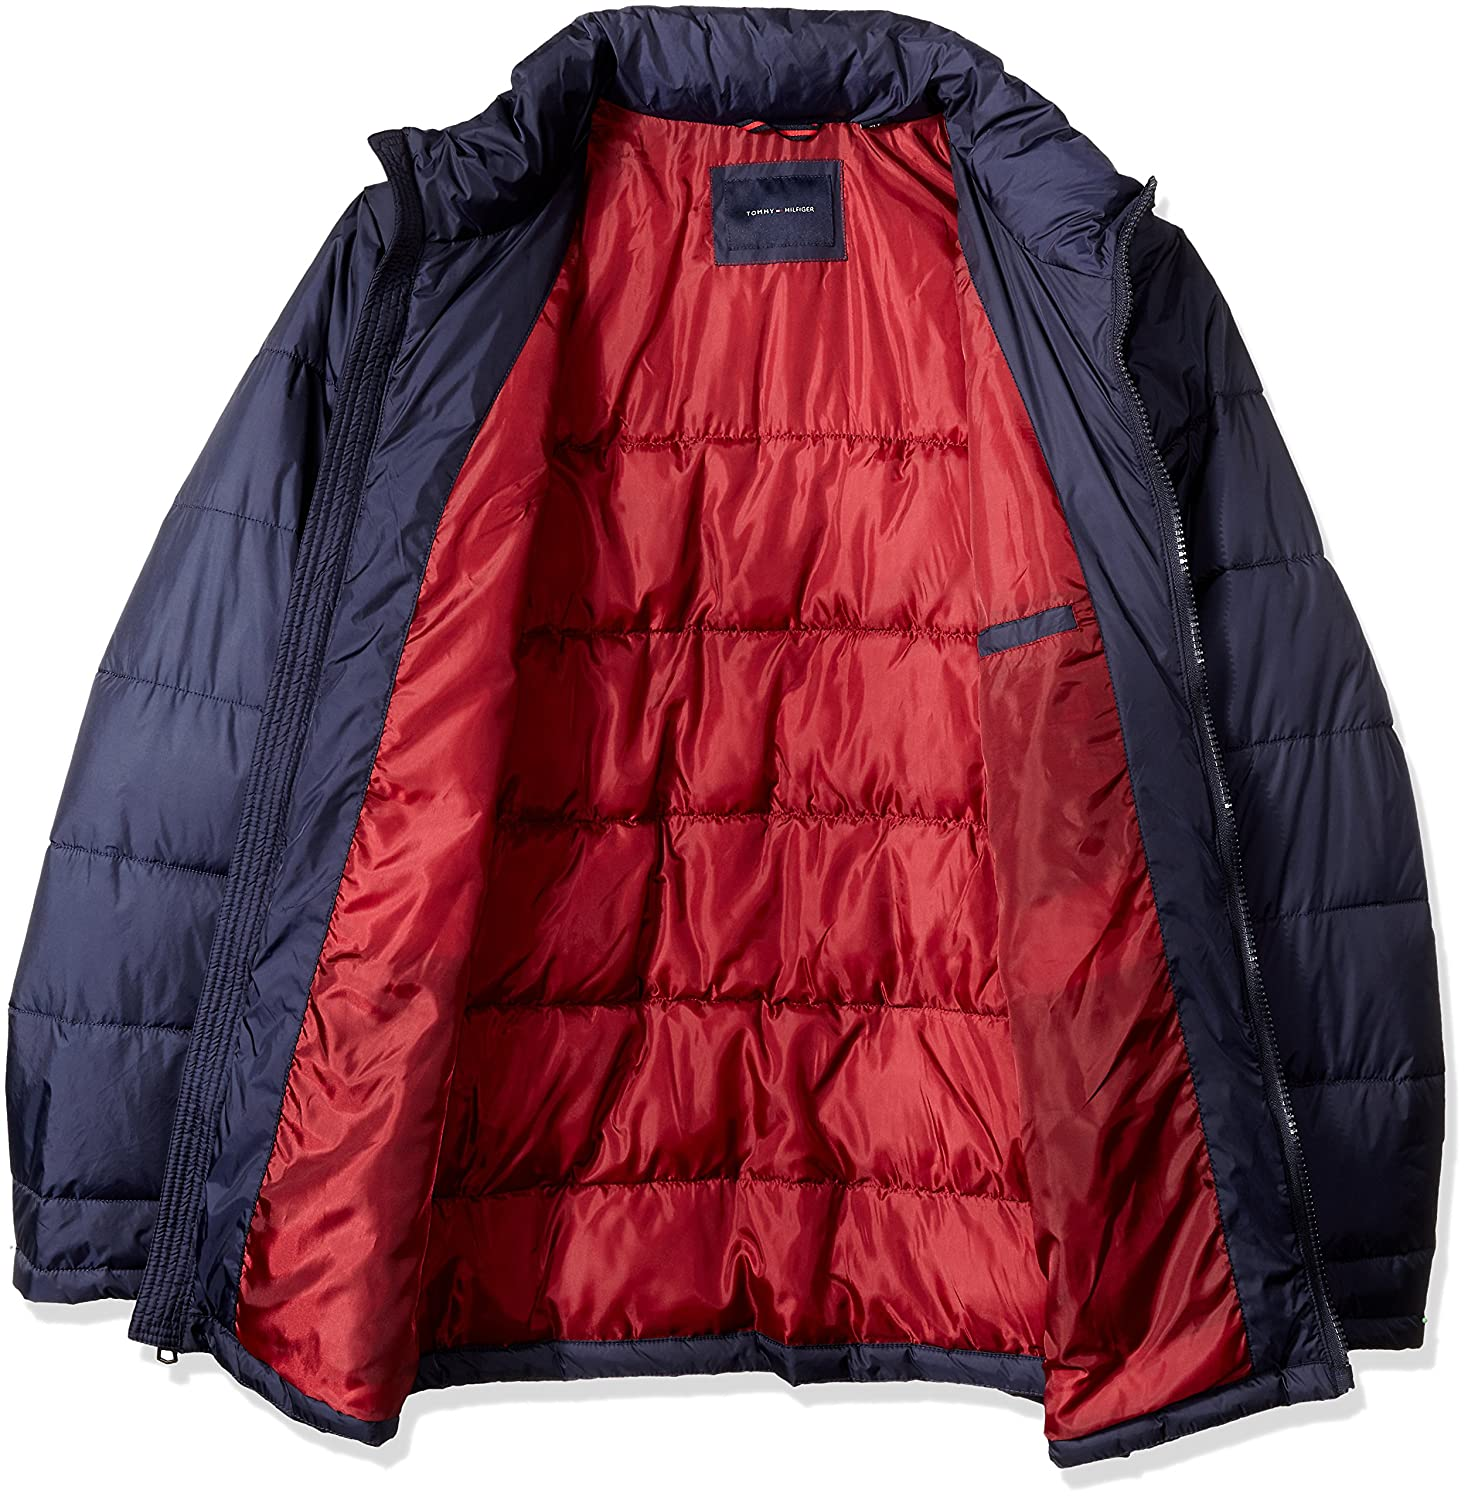 Tommy Hilfiger Men's Tall Size Midweight Quilted Puffer Jacket at Amazon  Men's Clothing store: